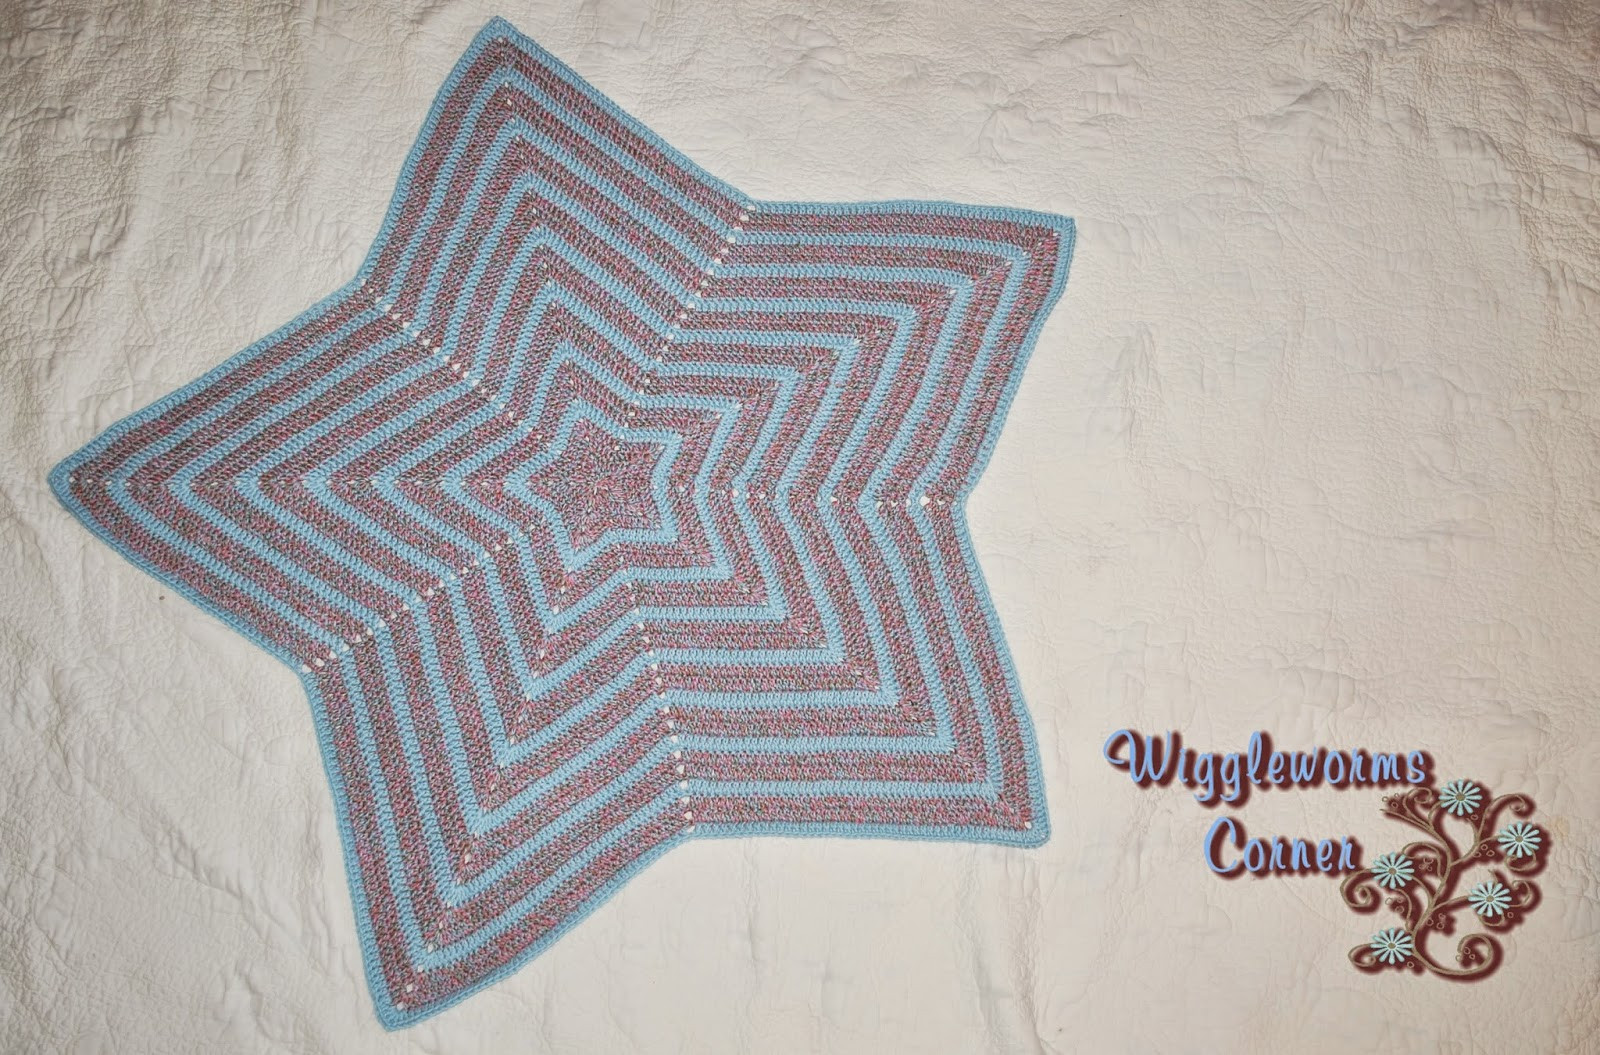 Elegant Craftymamafun Crocheted Star Blanket Crochet Star Blanket Of Superb 49 Images Crochet Star Blanket